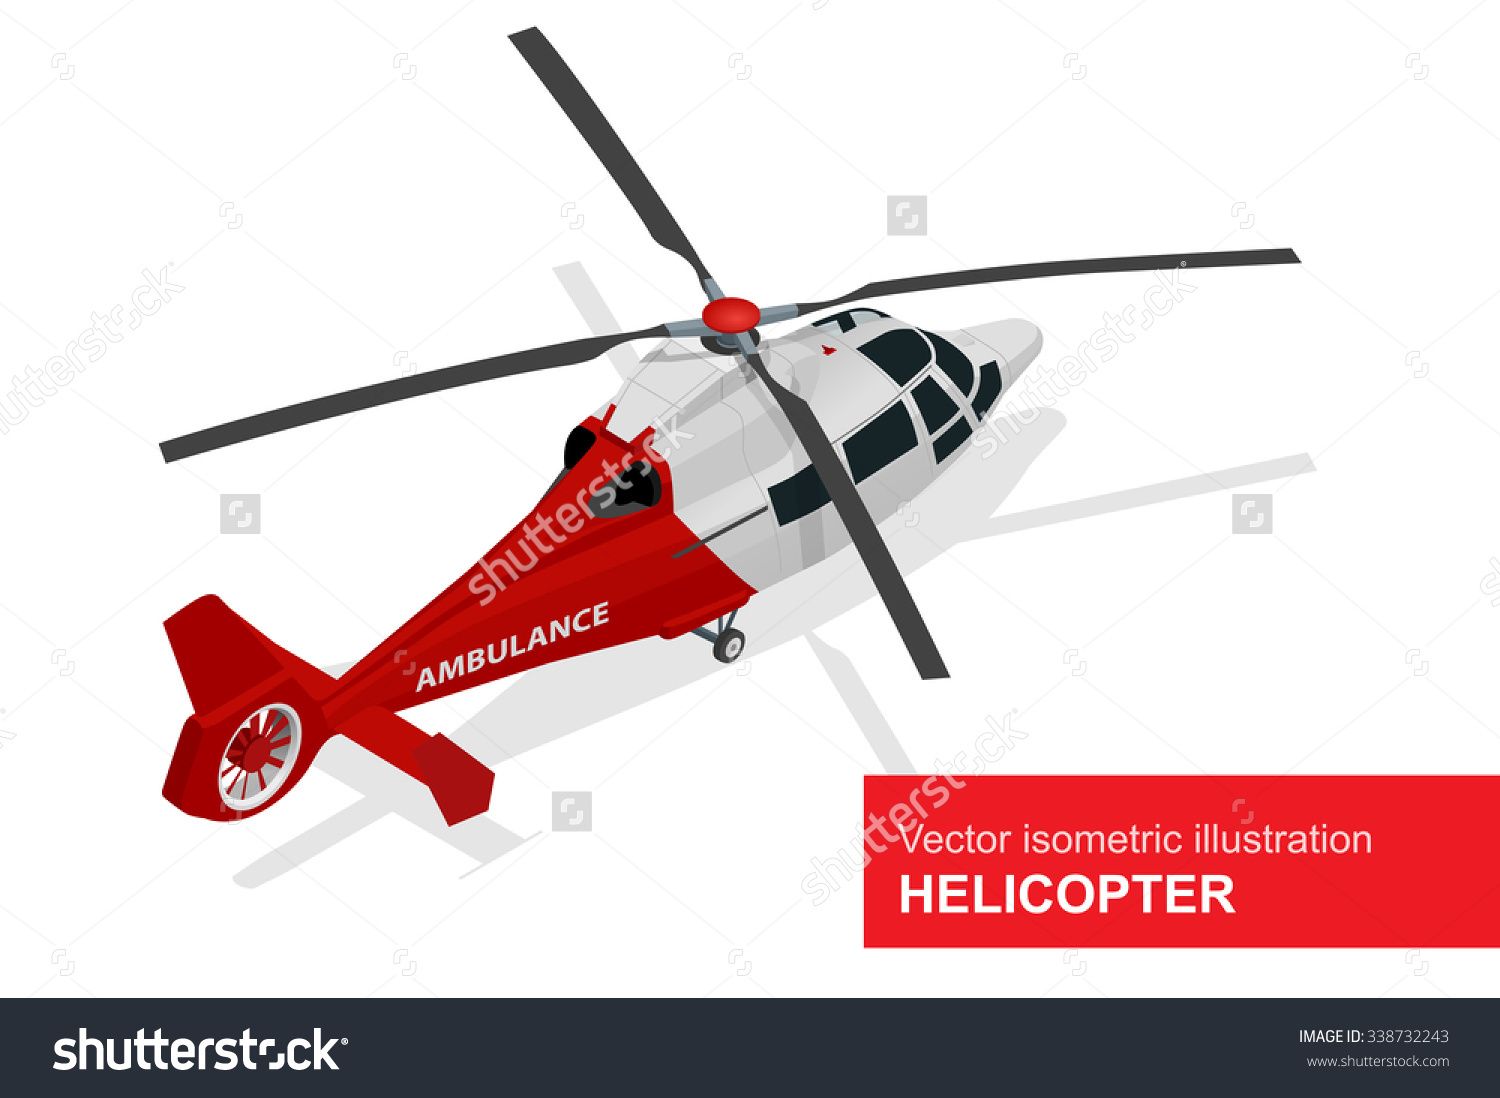 Helicopter Medical Evacuation Flat 3d Isometric Stock Vector.